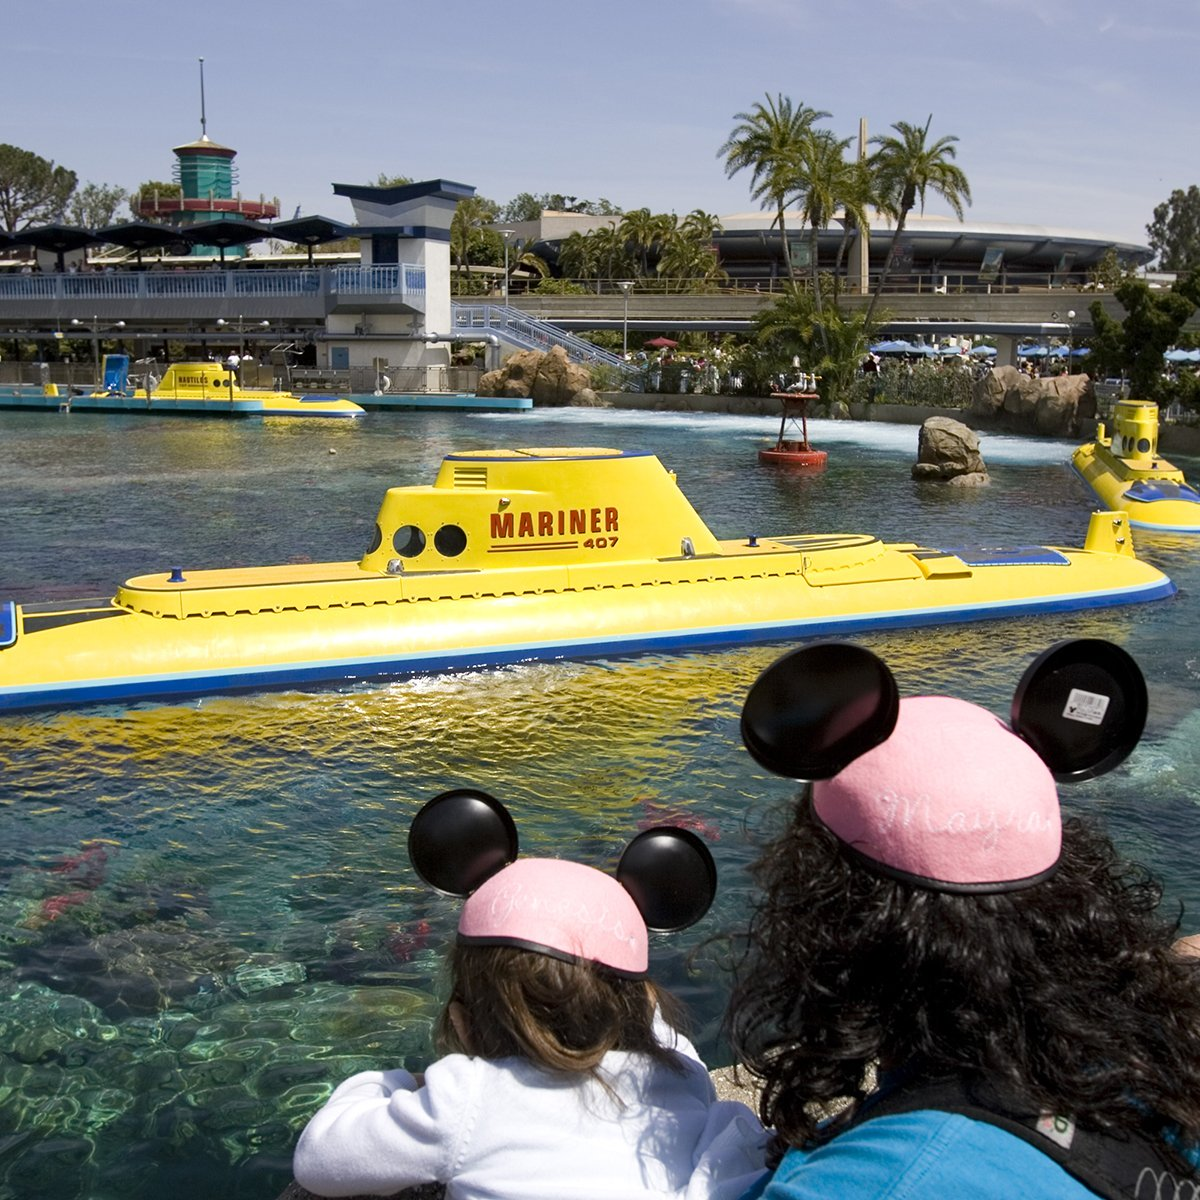 Slide 15 of 19: One of the original Disneyland attractions, Submarine Voyage, reopened to the public after nine years of refurbishment. It was rebranded with a Finding Nemo spin.